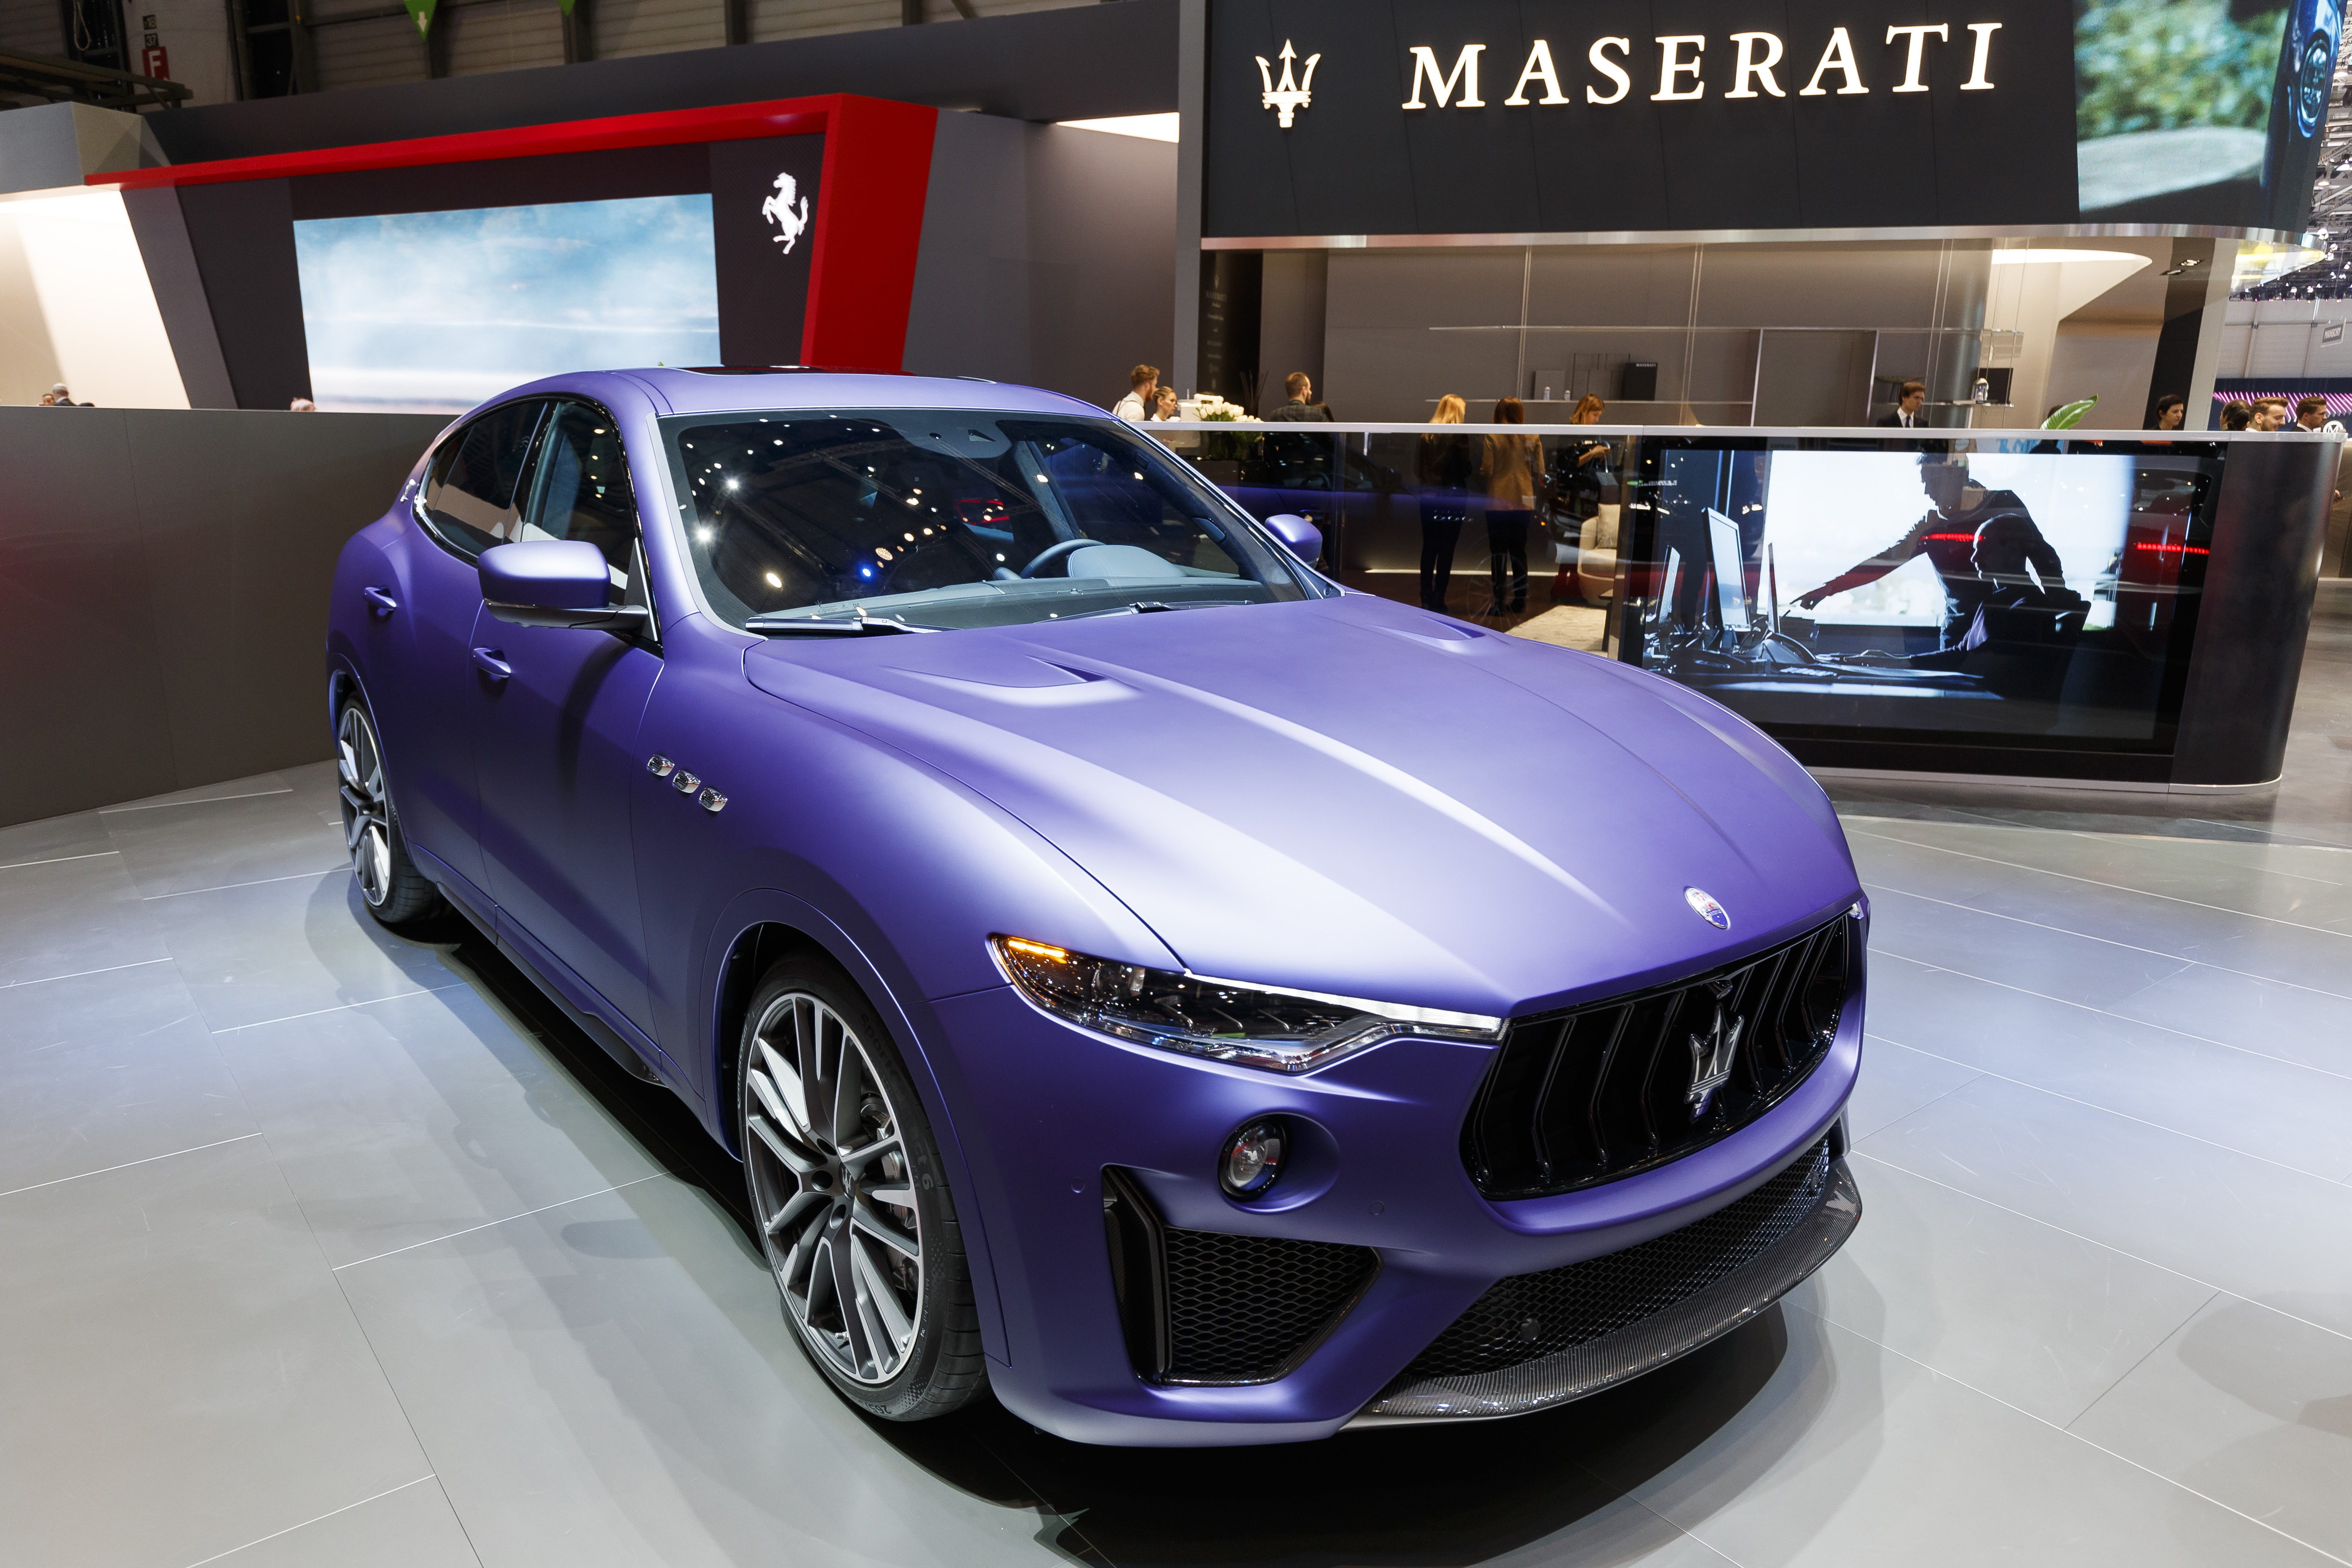 The new Maserati Levante Trofeo is presented during the press day at the 89th Geneva International Motor Show in Geneva, Switzerland, Wednesday, March 6, 2019. The Motor Show will open its gates to the public from 7 to 17 March presenting more than 180 exhibitors and more than 100 world and European premieres. (Cyril Zingaro/Keystone via AP)